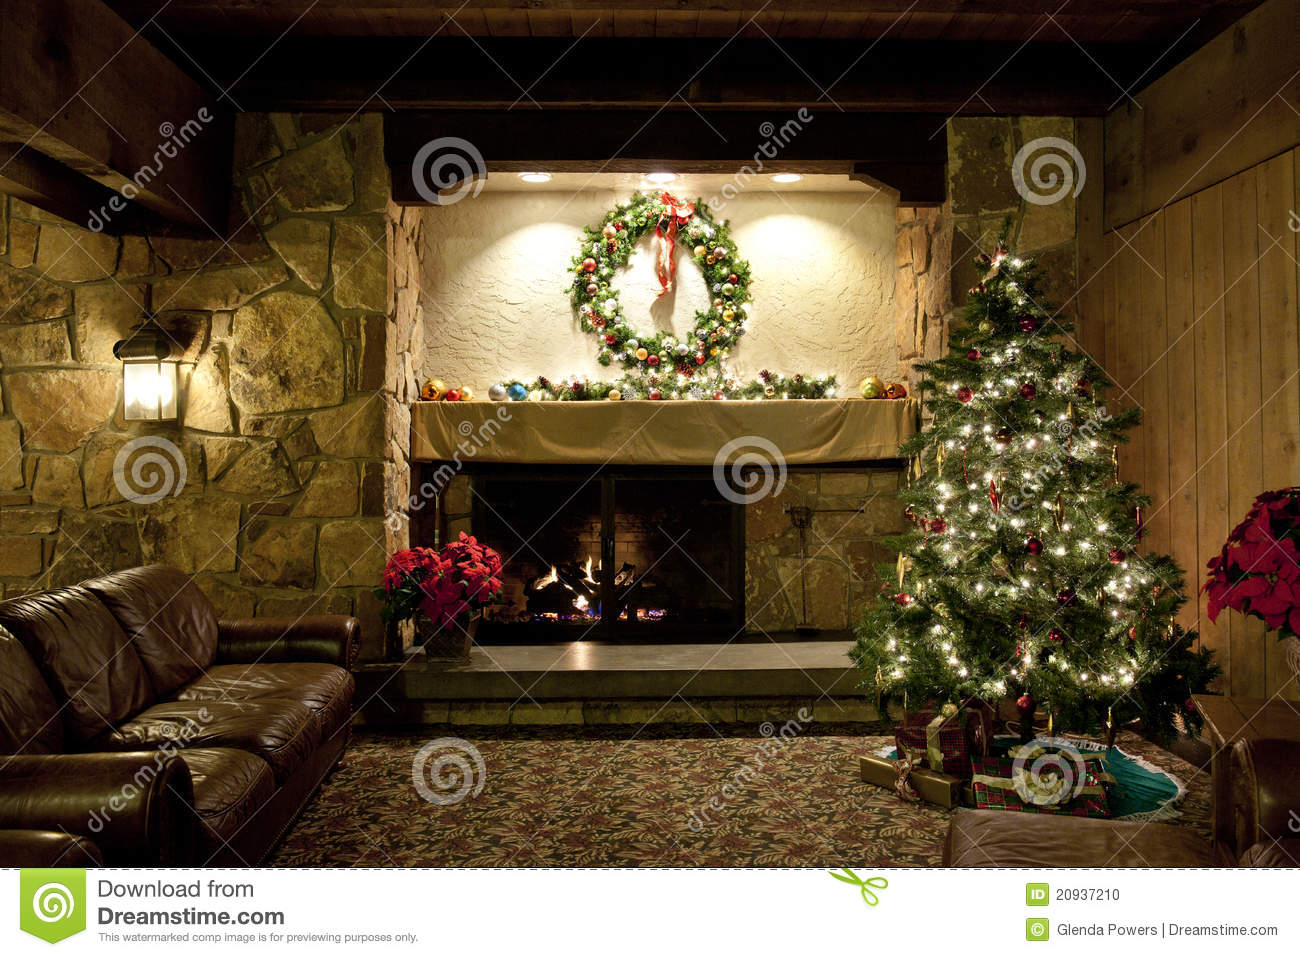 Rustic Christmas Living Room Stock Photo Image 20937210